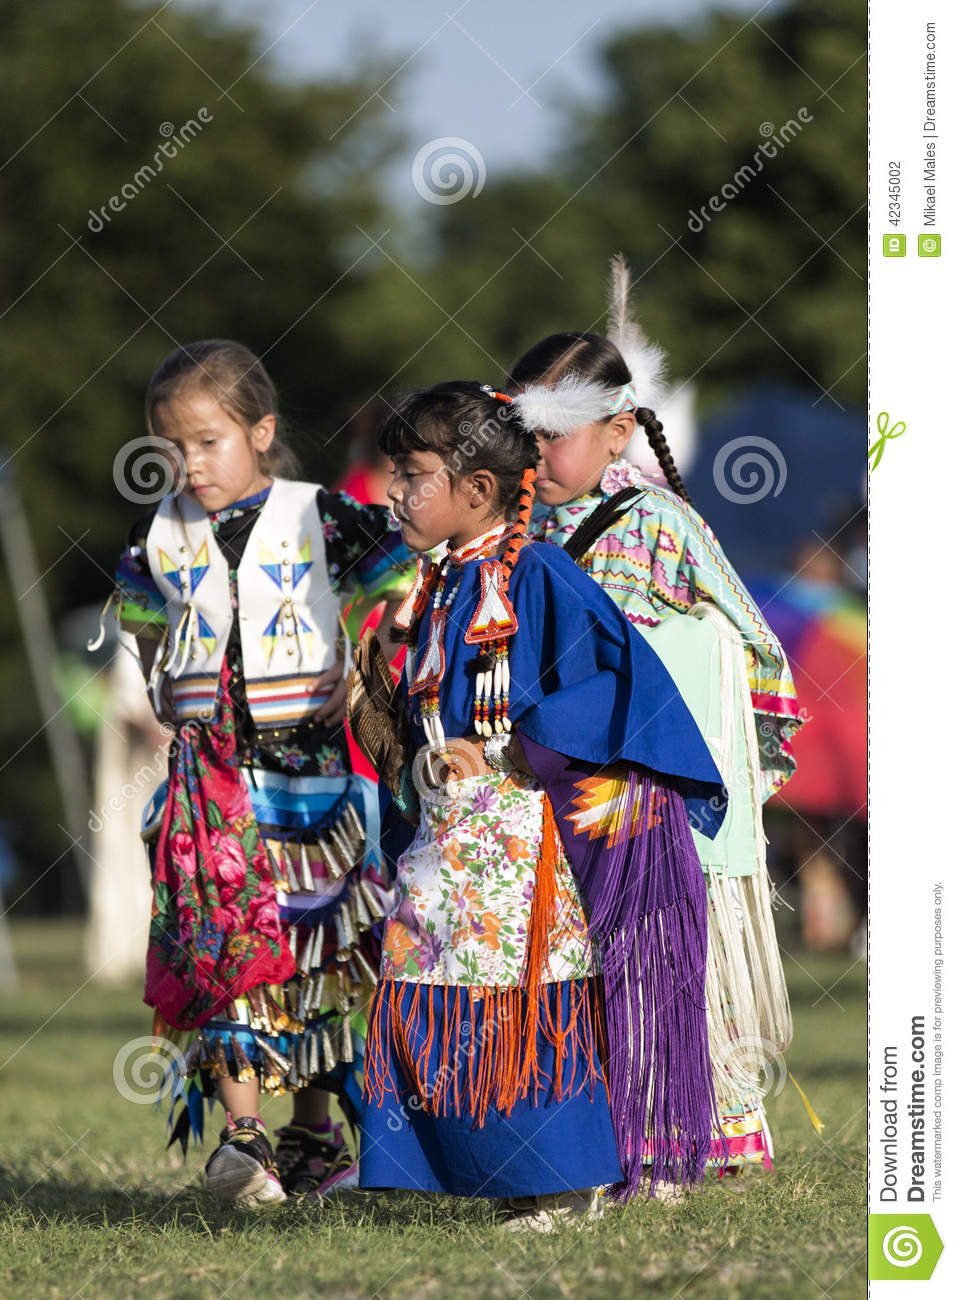 Cherokee For Less >> Shawnee Indian Children At Pow-wow Editorial Photography ...